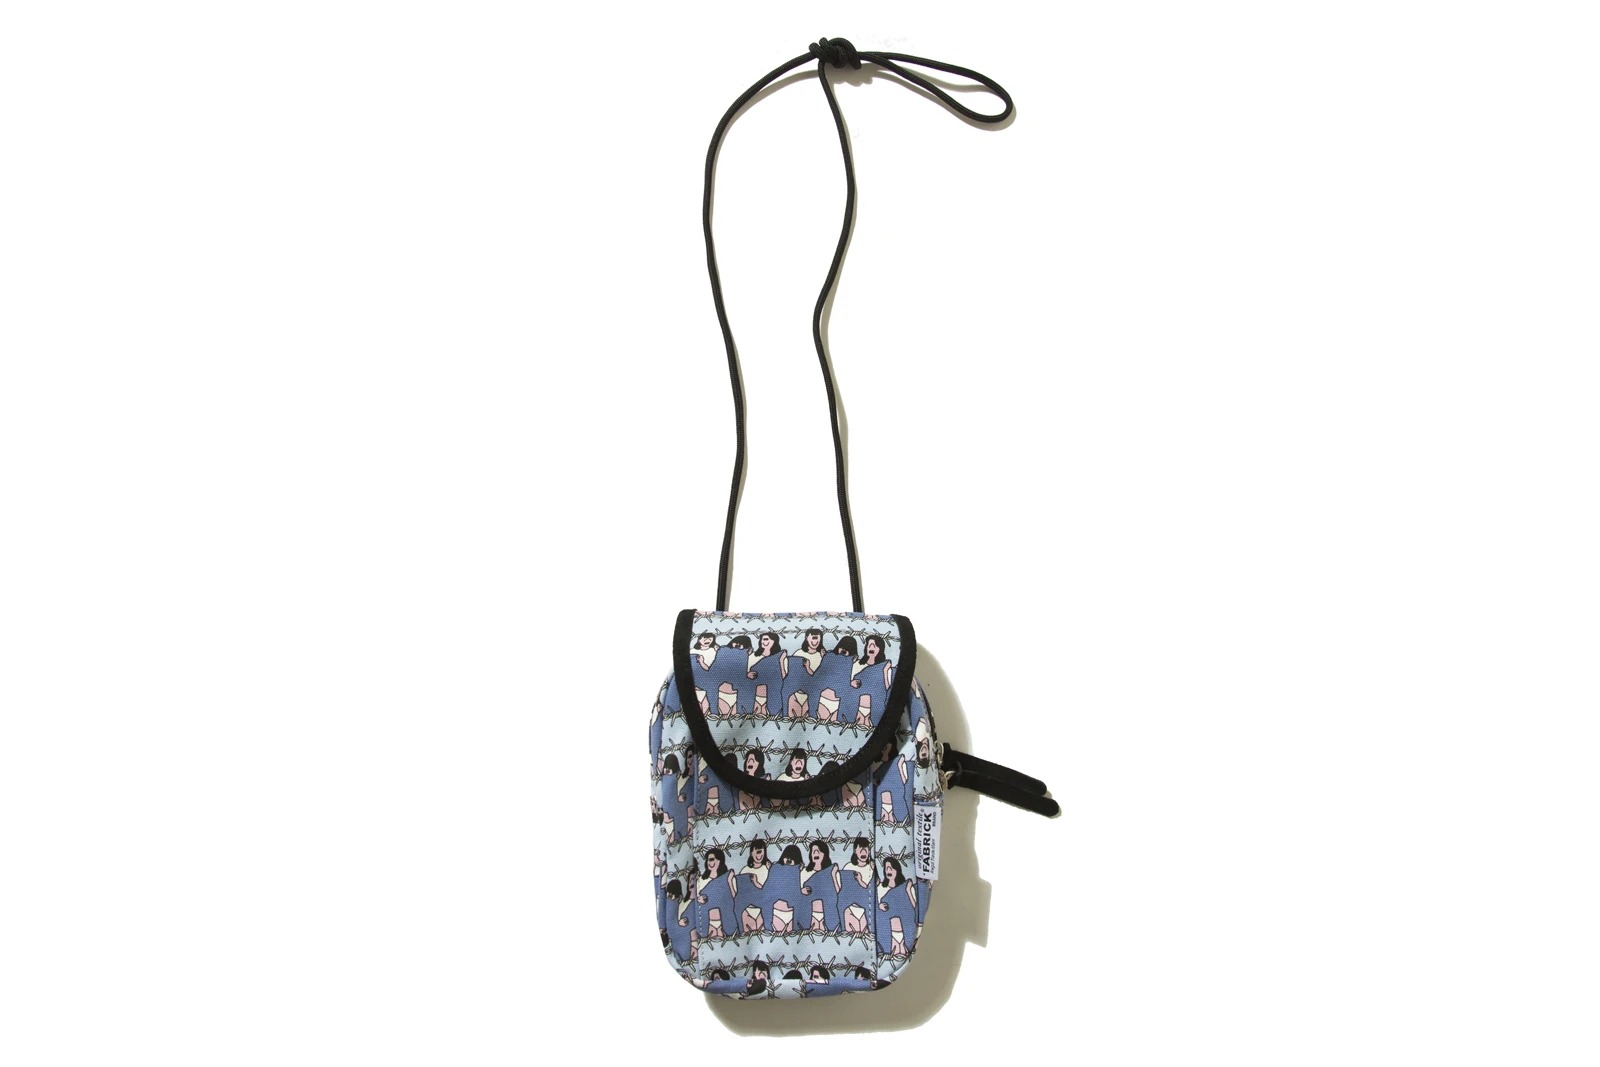 fabrick-x-face-outdoor-mini-shoulder-bag_p2